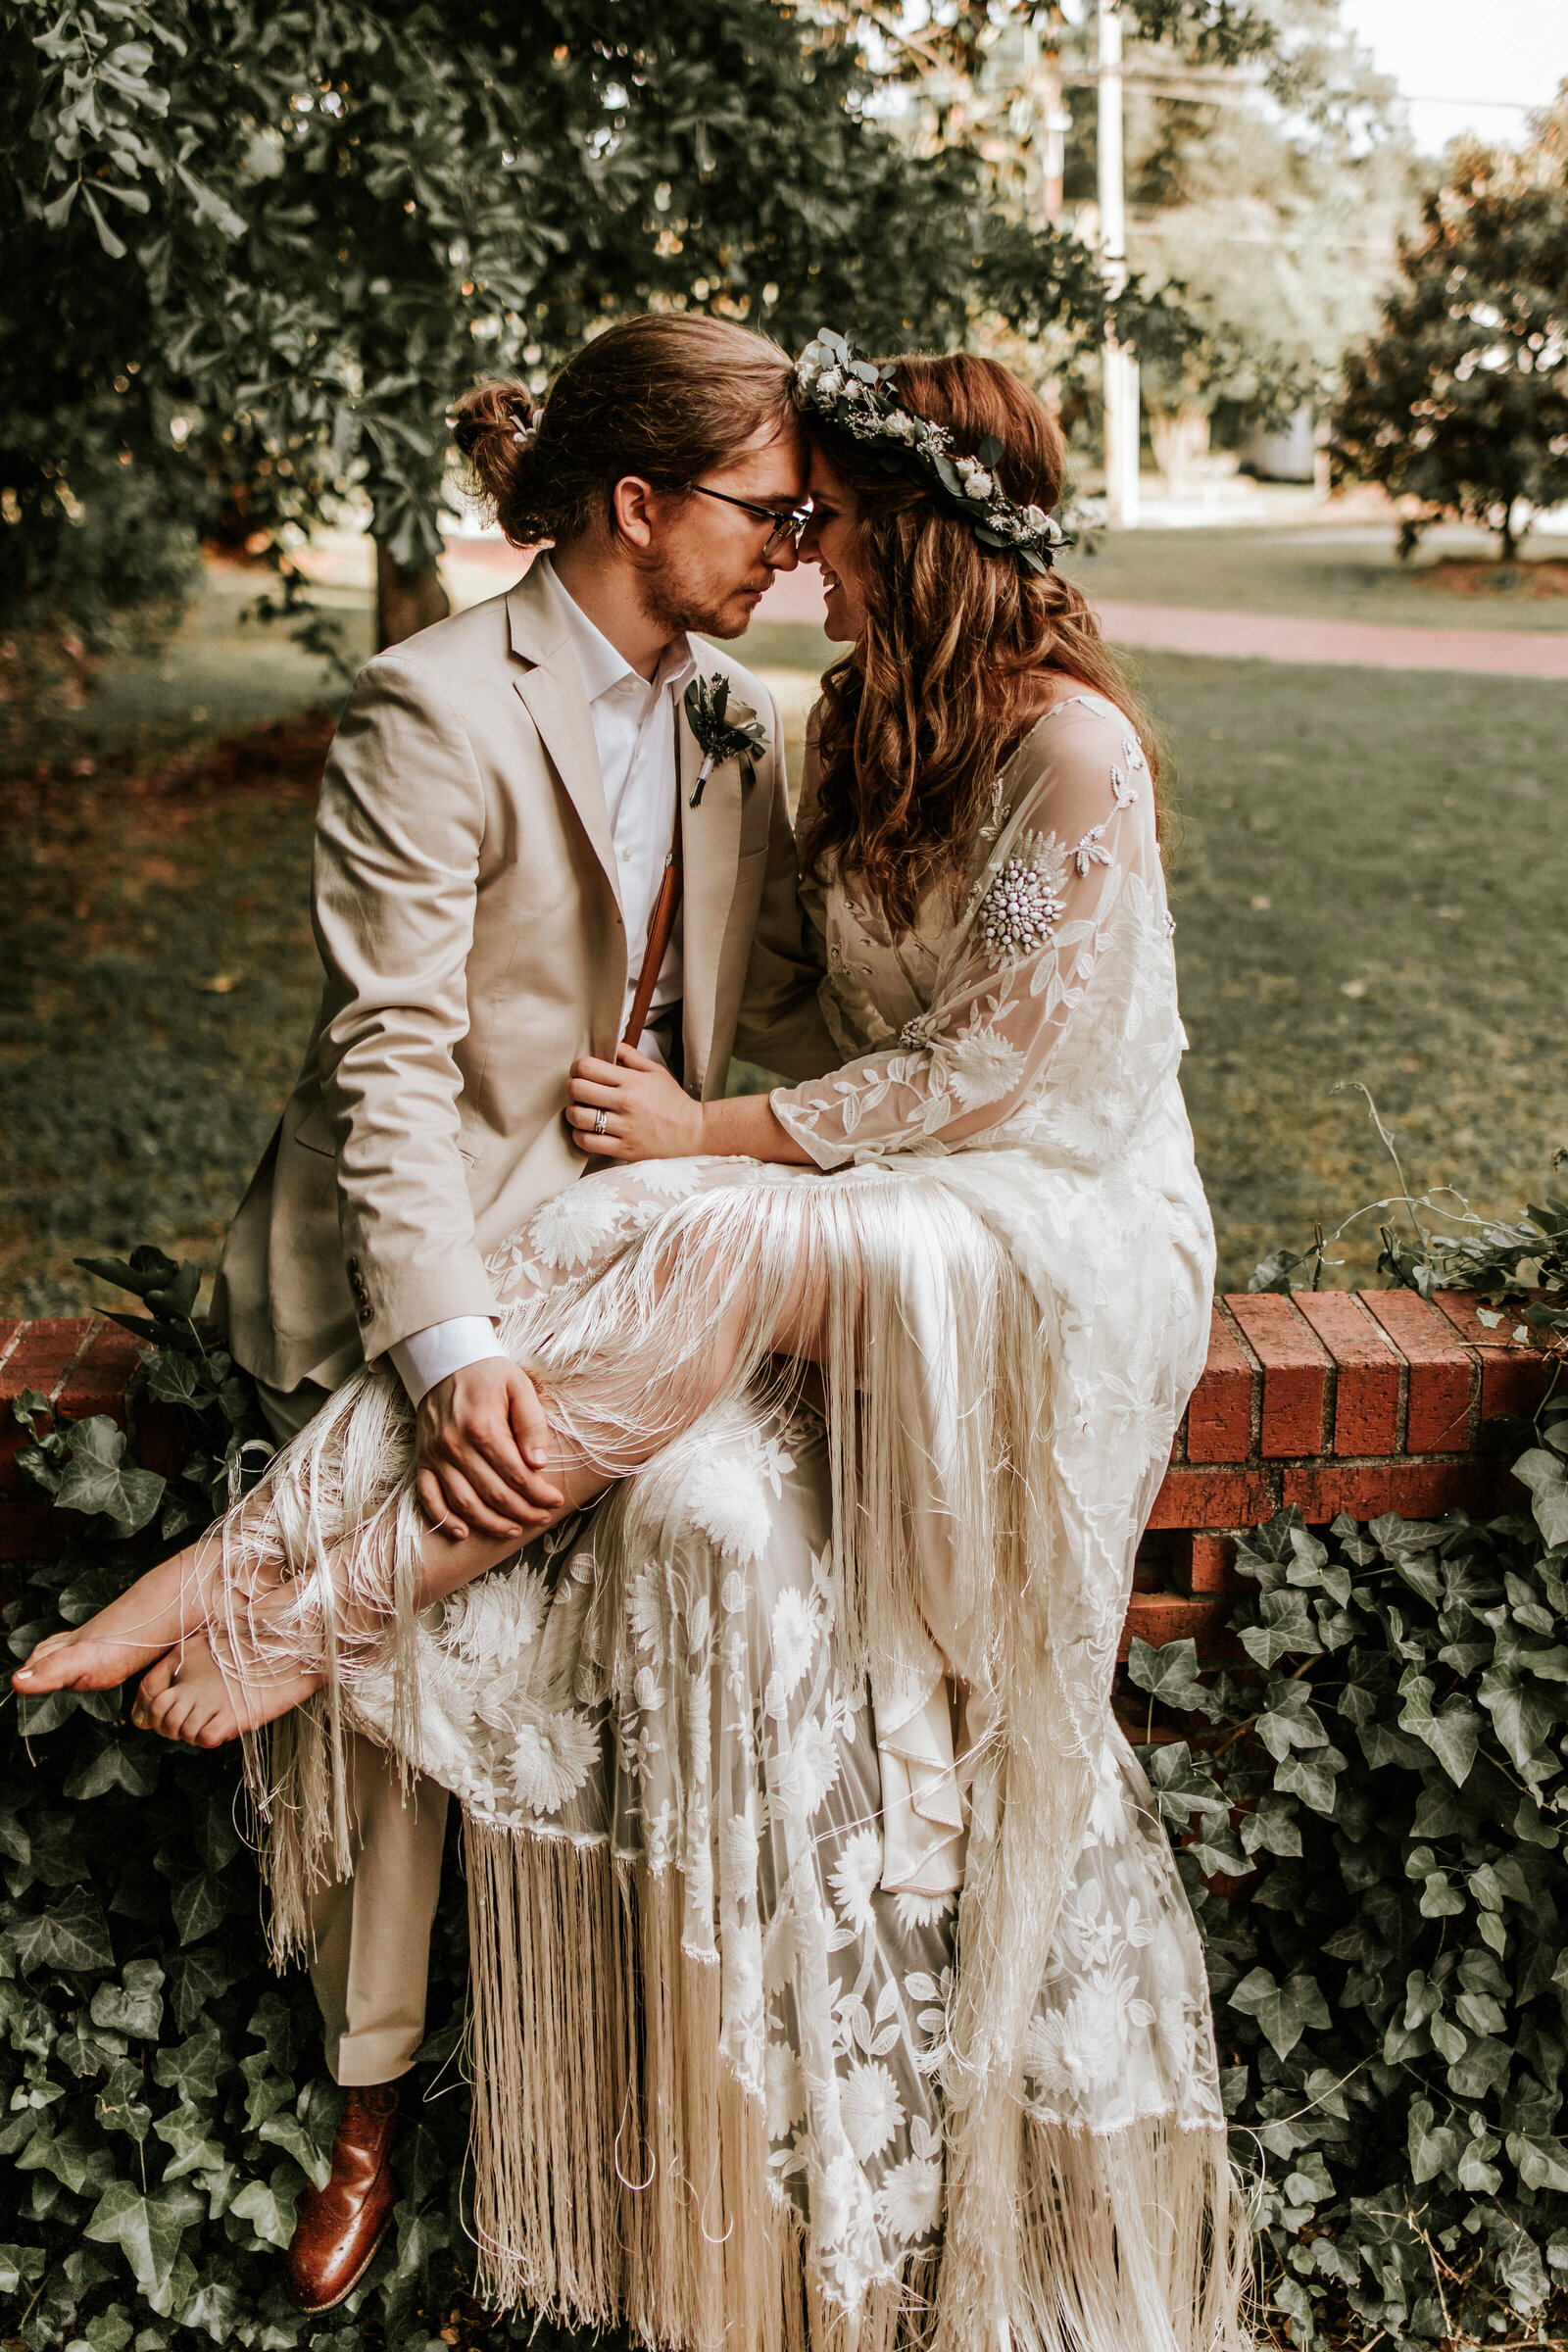 J.Michelle Photography photographs bride and groom at Athens, Ga Wedding